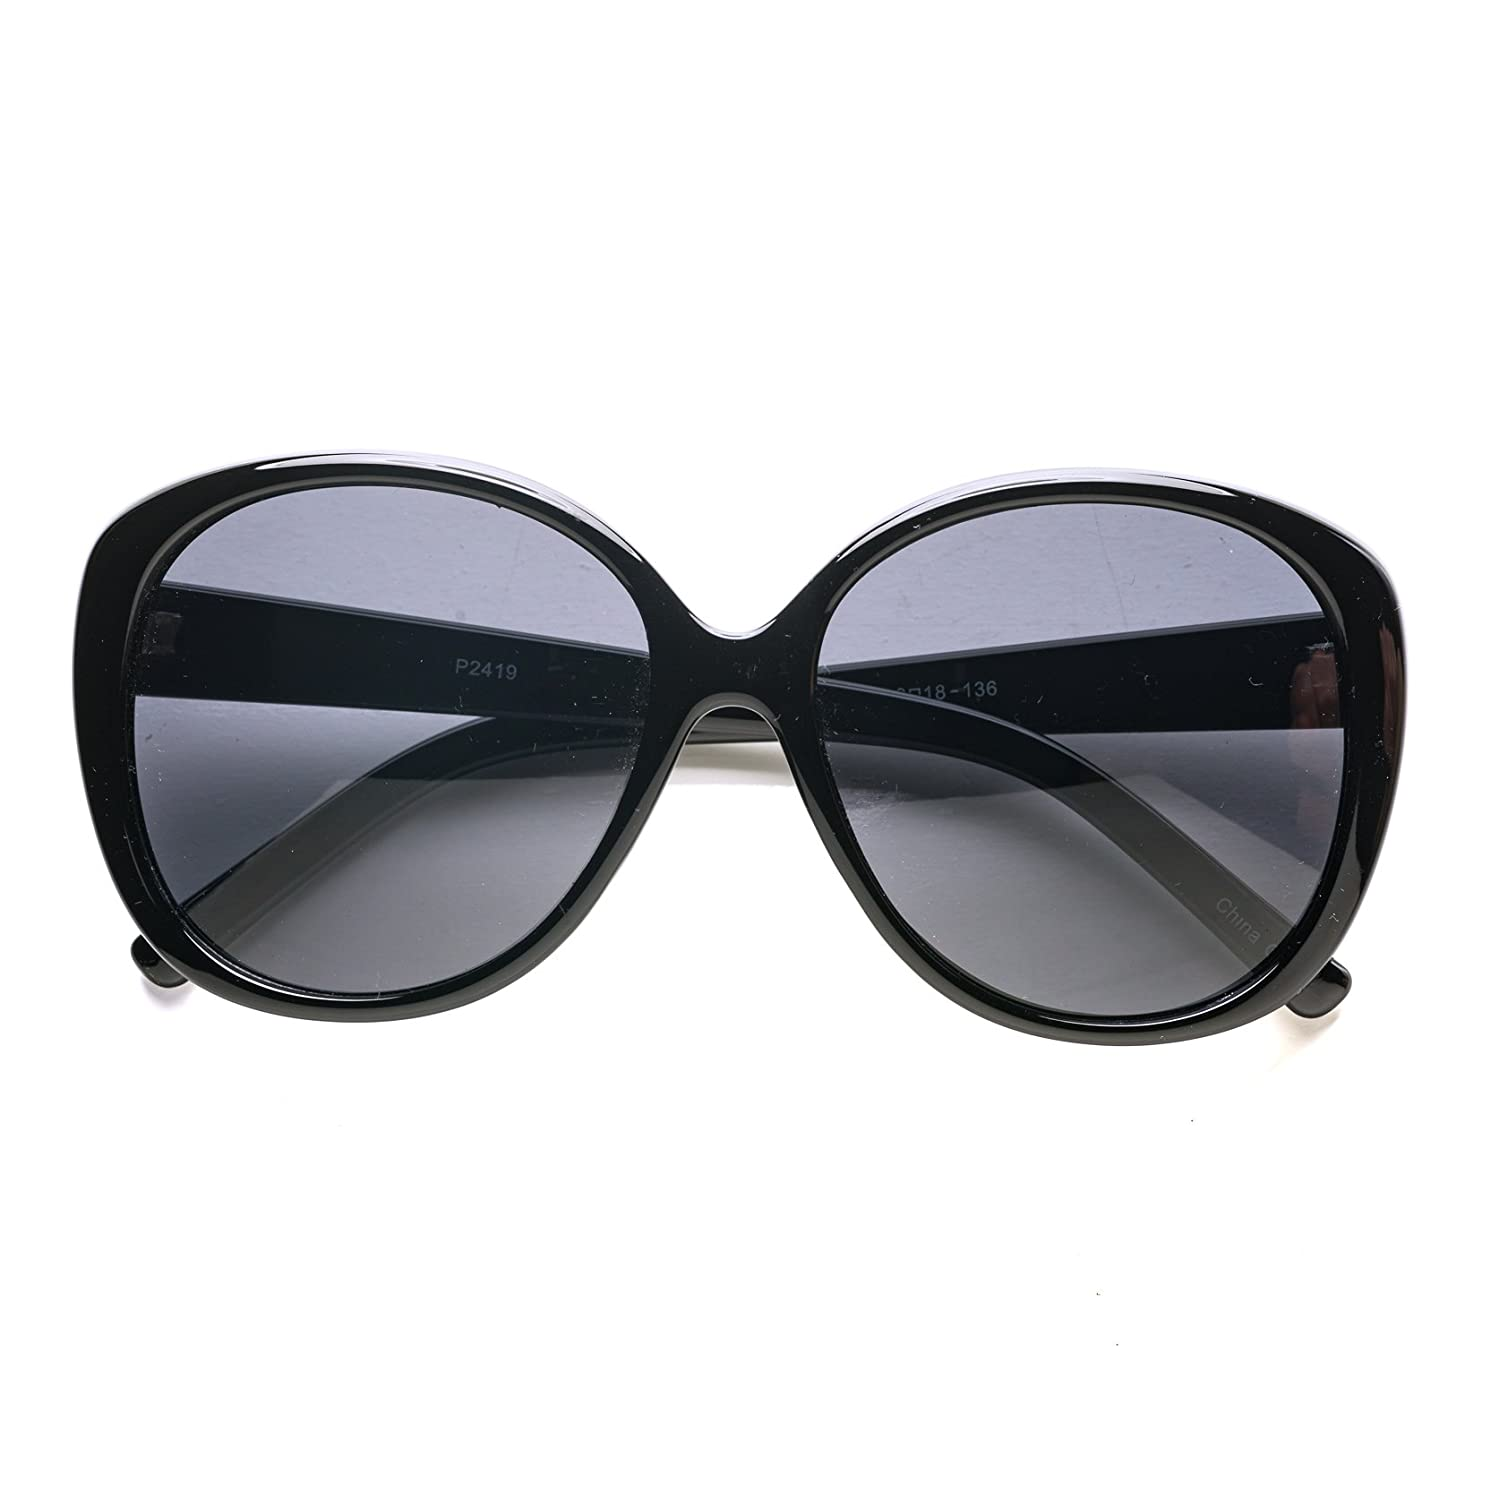 1ac8adb580 Amazon.com  Pop Fashionwear Oversized Oval Sunglasses P2419 (Bk